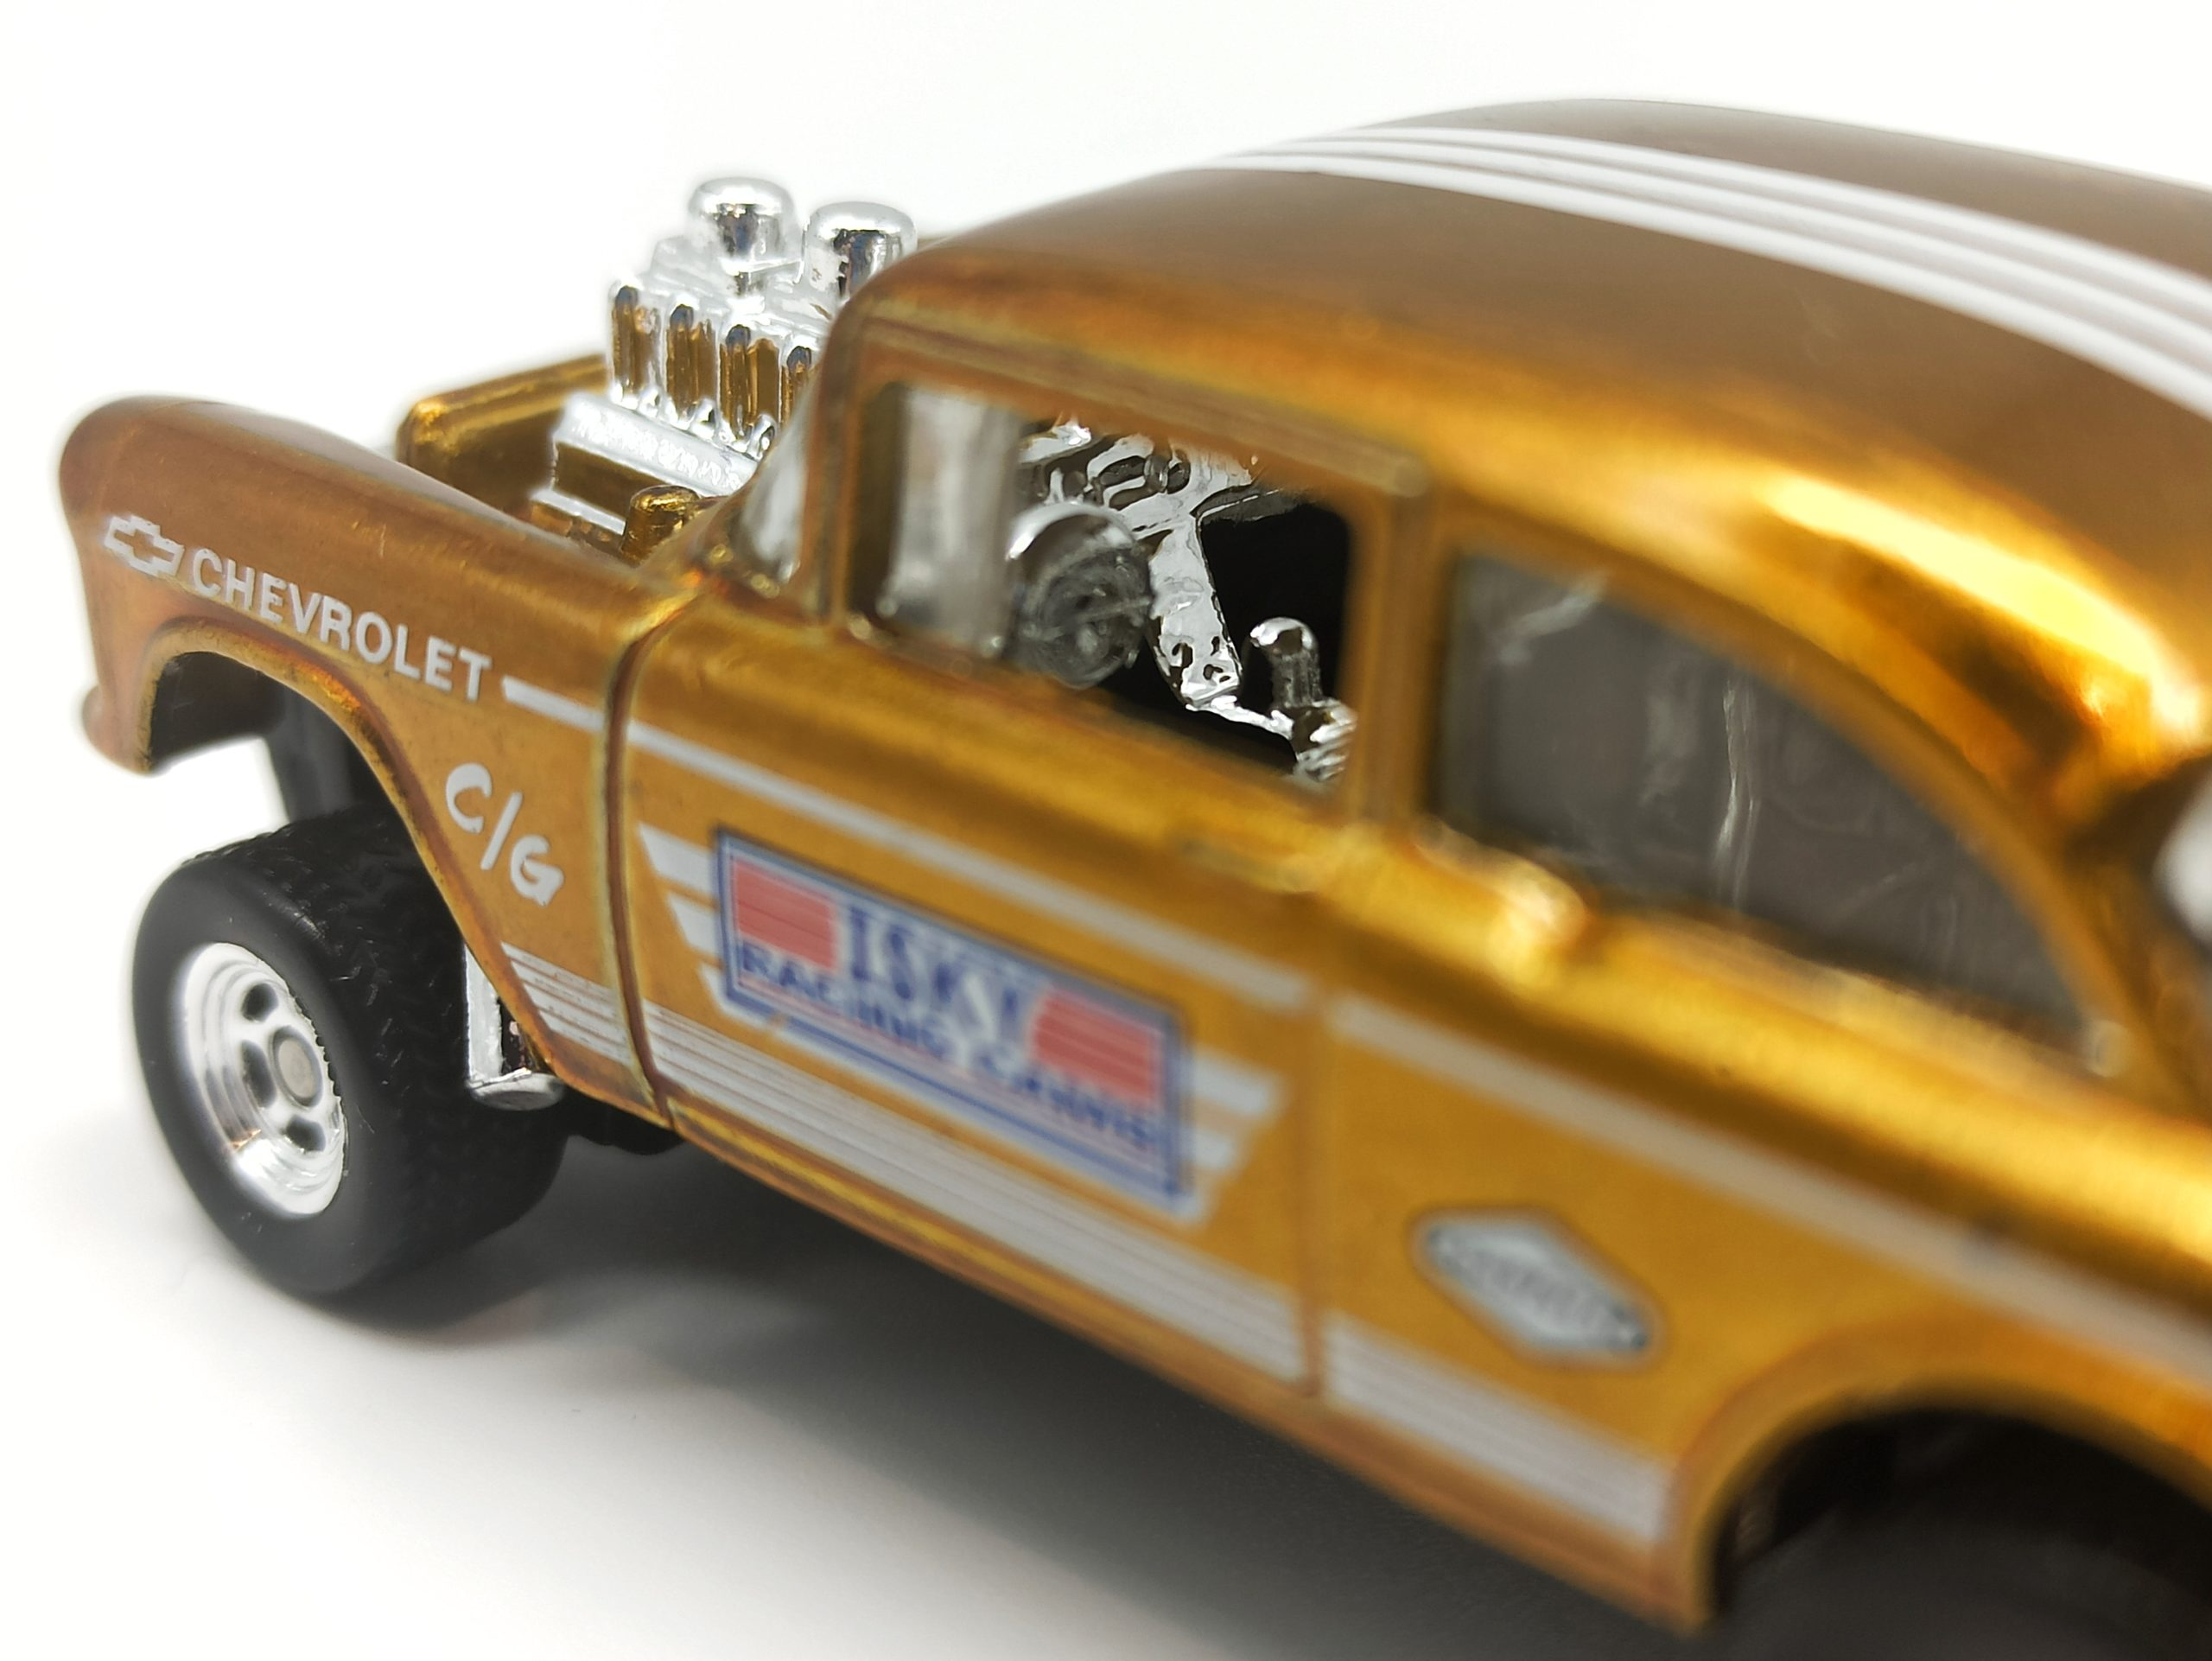 Hot Wheels '55 Chevy Bel Air Gasser 2020 Legends Tour Exclusive spectraflame yellow (gold) interior